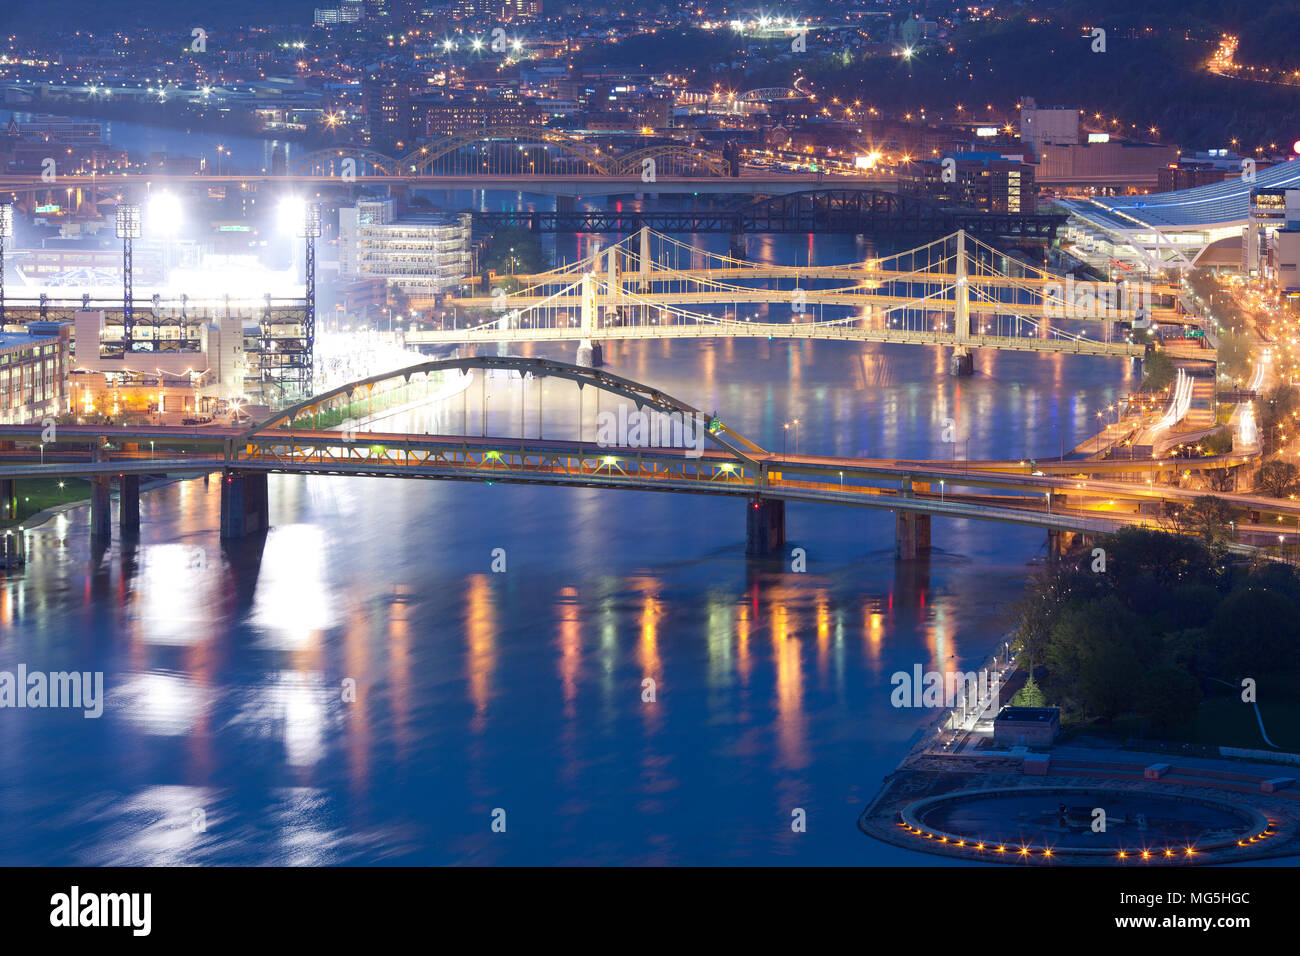 Bridges over the Allegheny River, Pittsburgh, Pennsylvania, USA - Stock Image